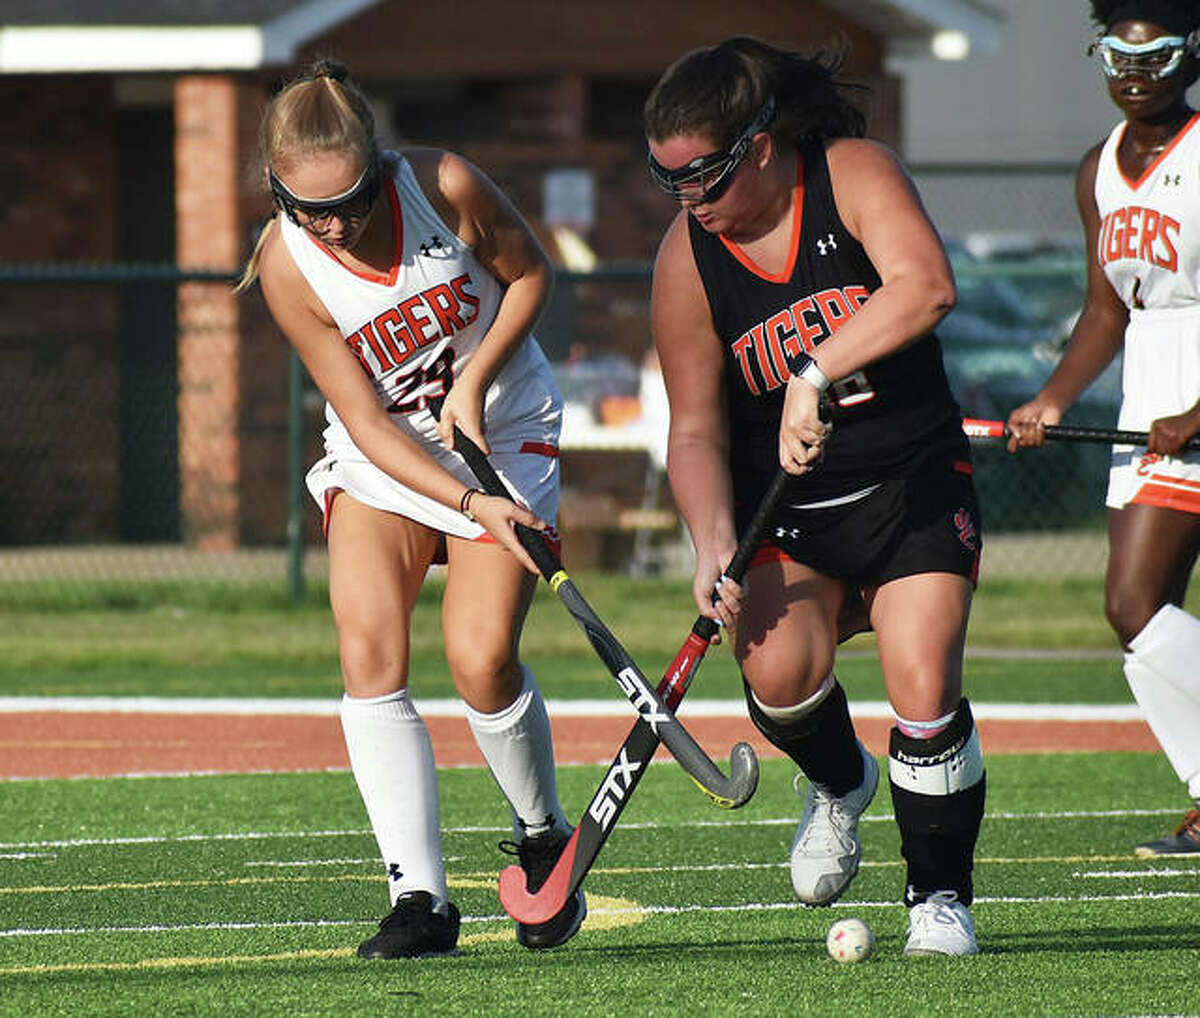 Edwardsville's Kyla Archer, right, had a hat trick in Friday's scrimmage to lead her team to a 5-1 win.